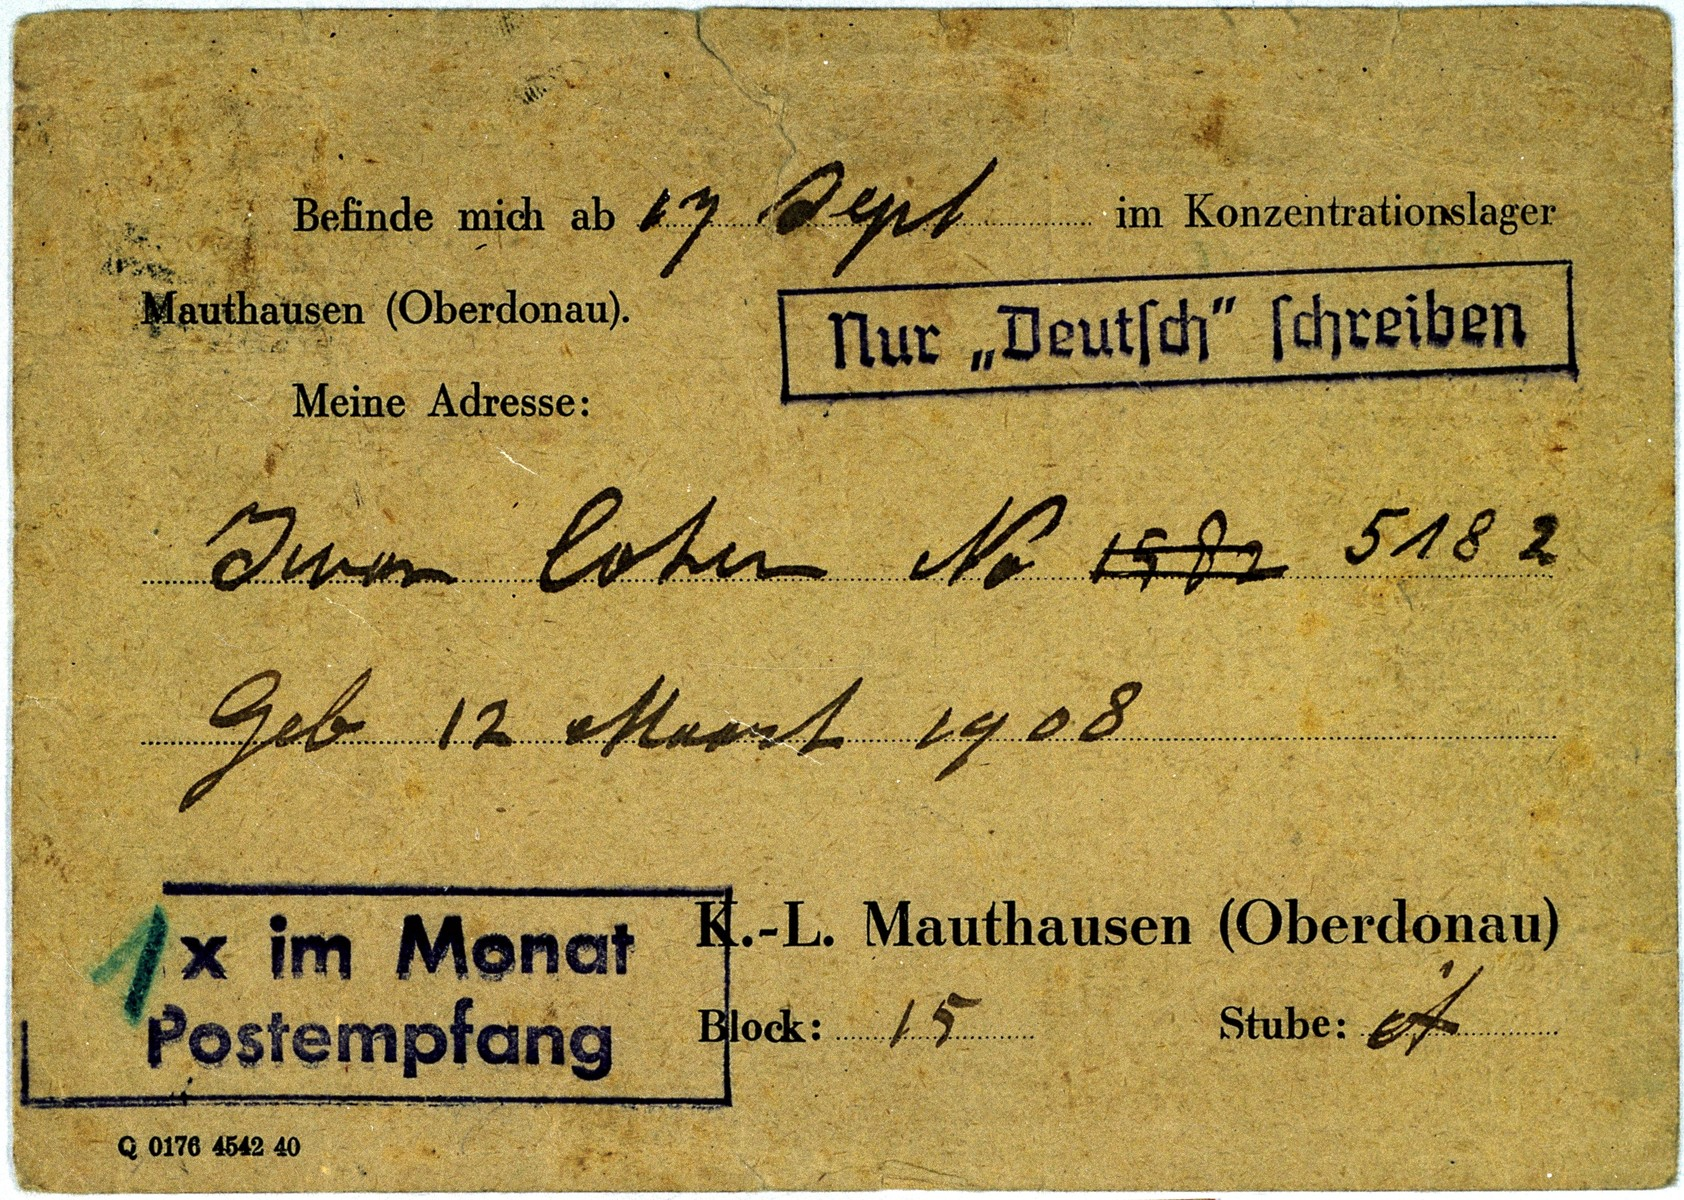 Postcard sent by Iwan Cohen to his family in Enschede after his arrival in the Mauthausen concentration camp.